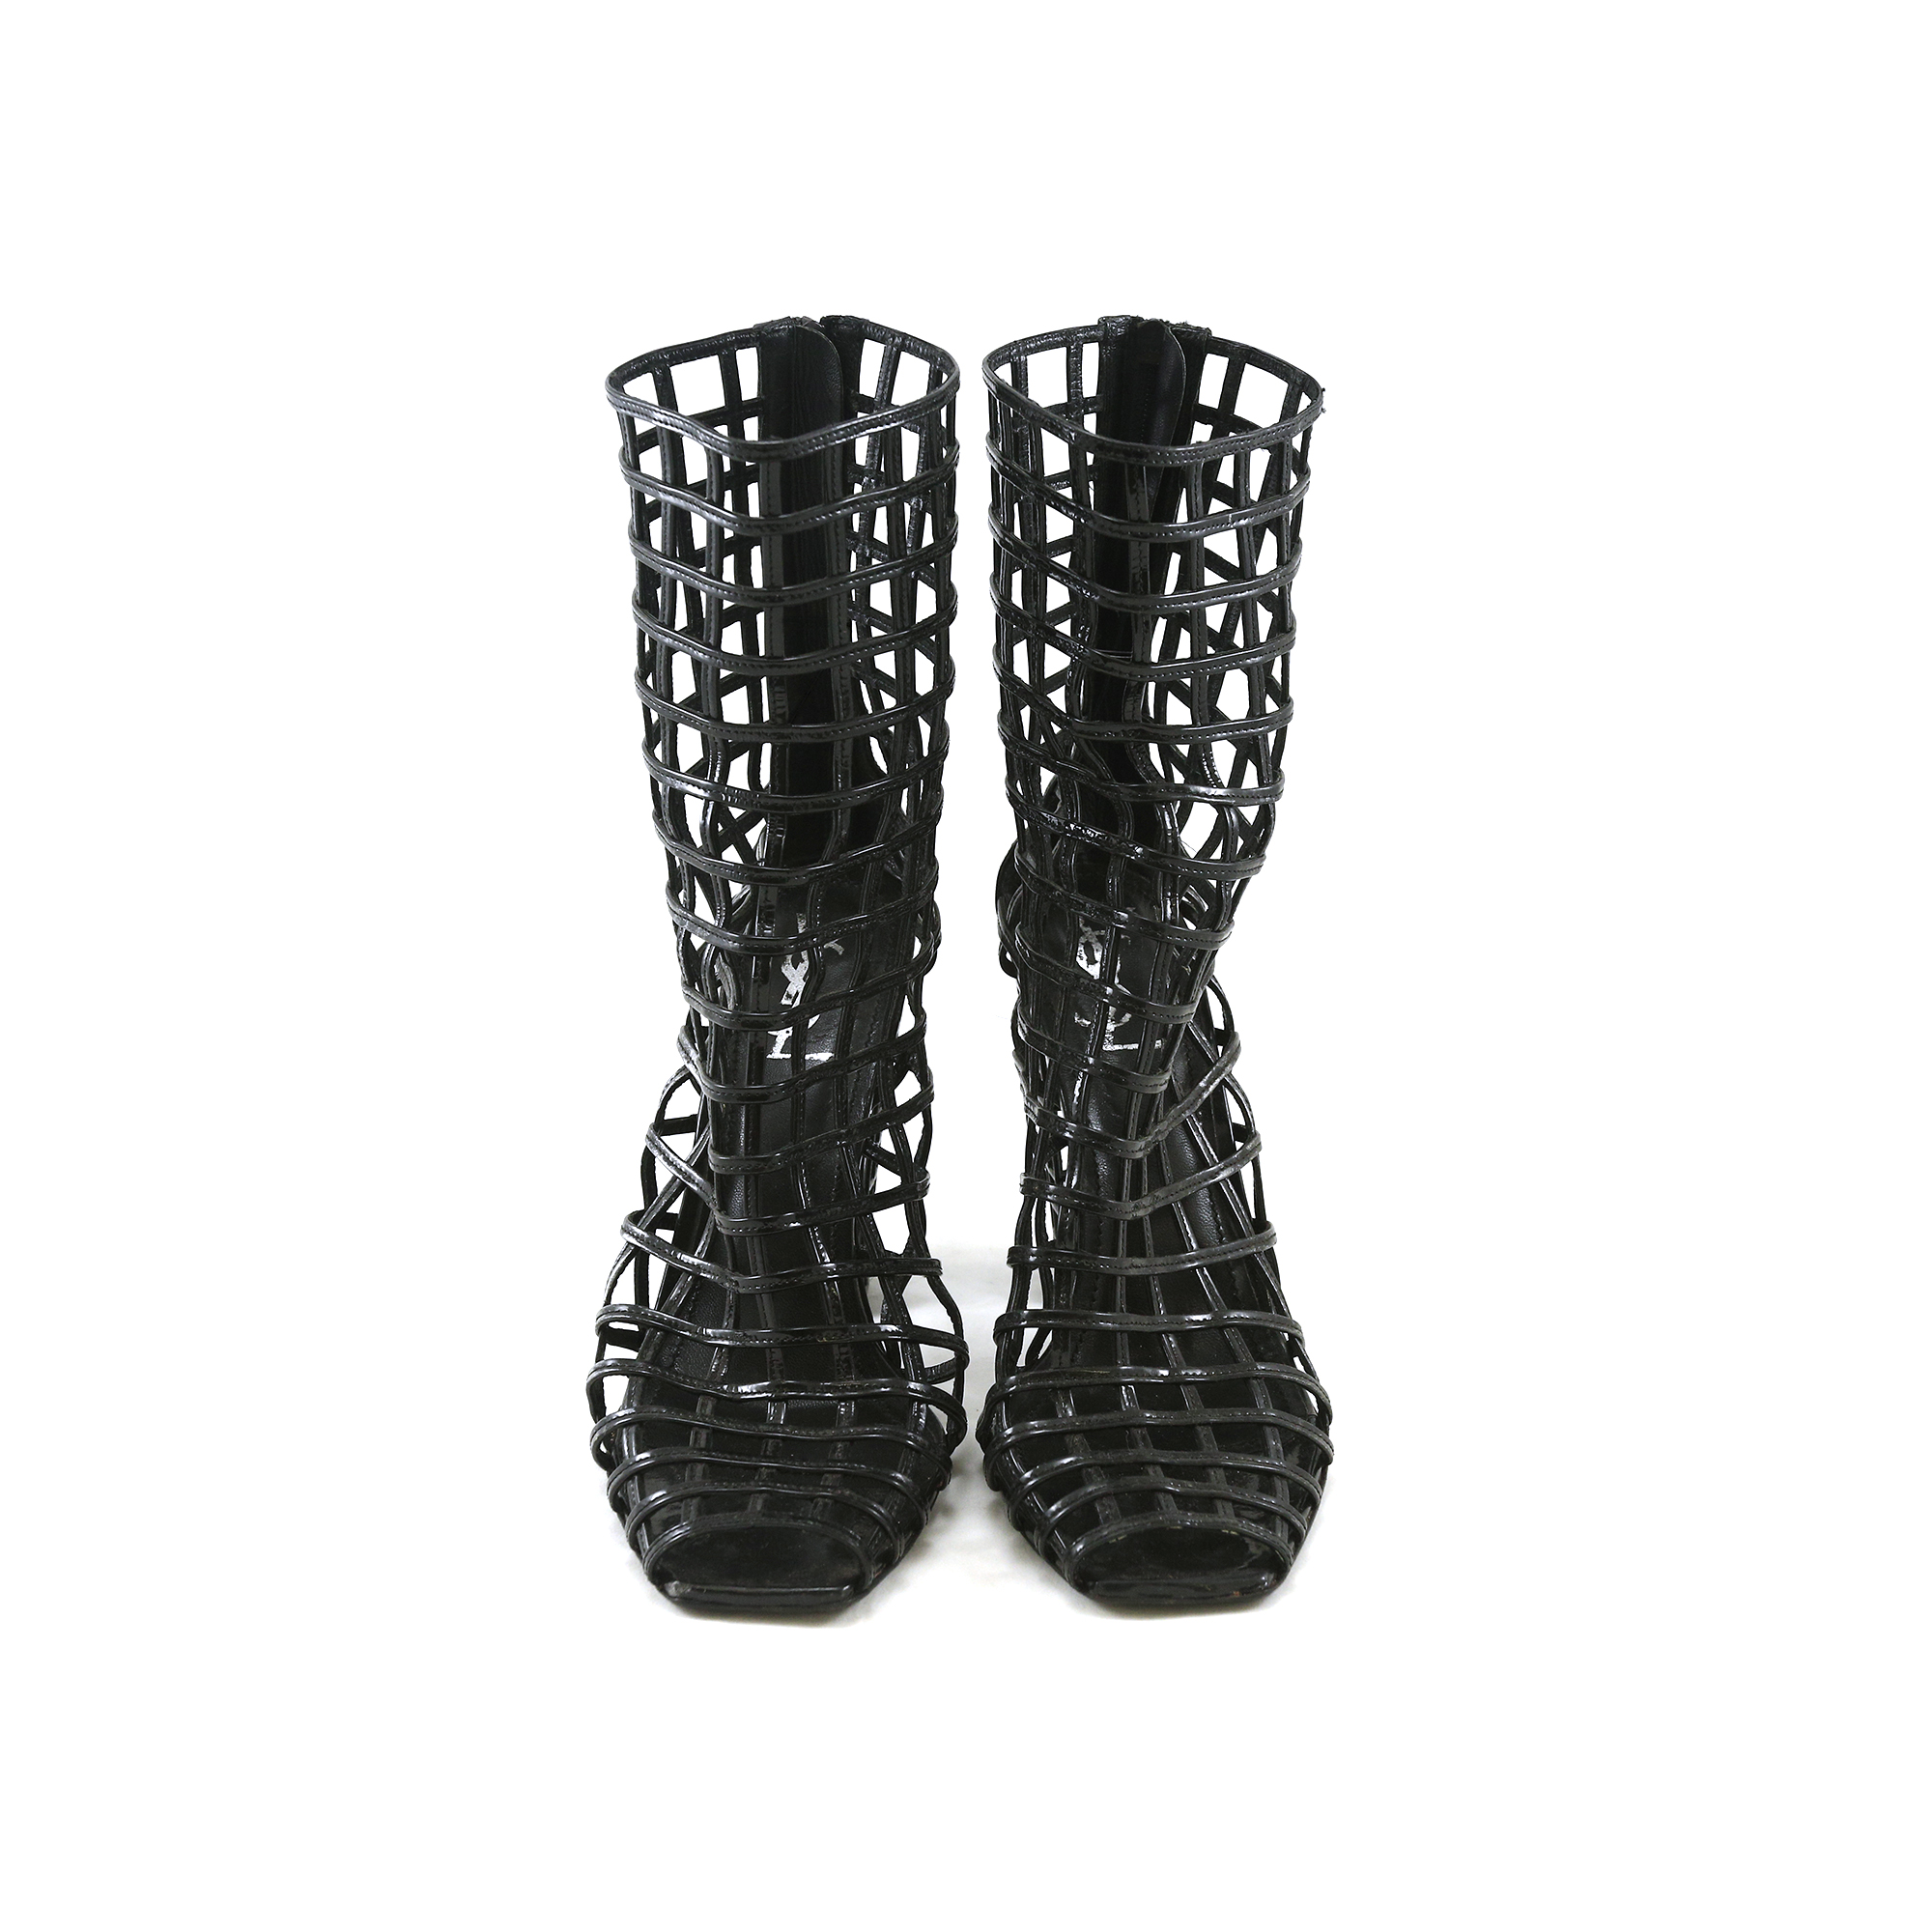 74c3097c0d9 Authentic Second Hand Yves Saint Laurent Cage Boots (PSS-028-00007) - THE  FIFTH COLLECTION